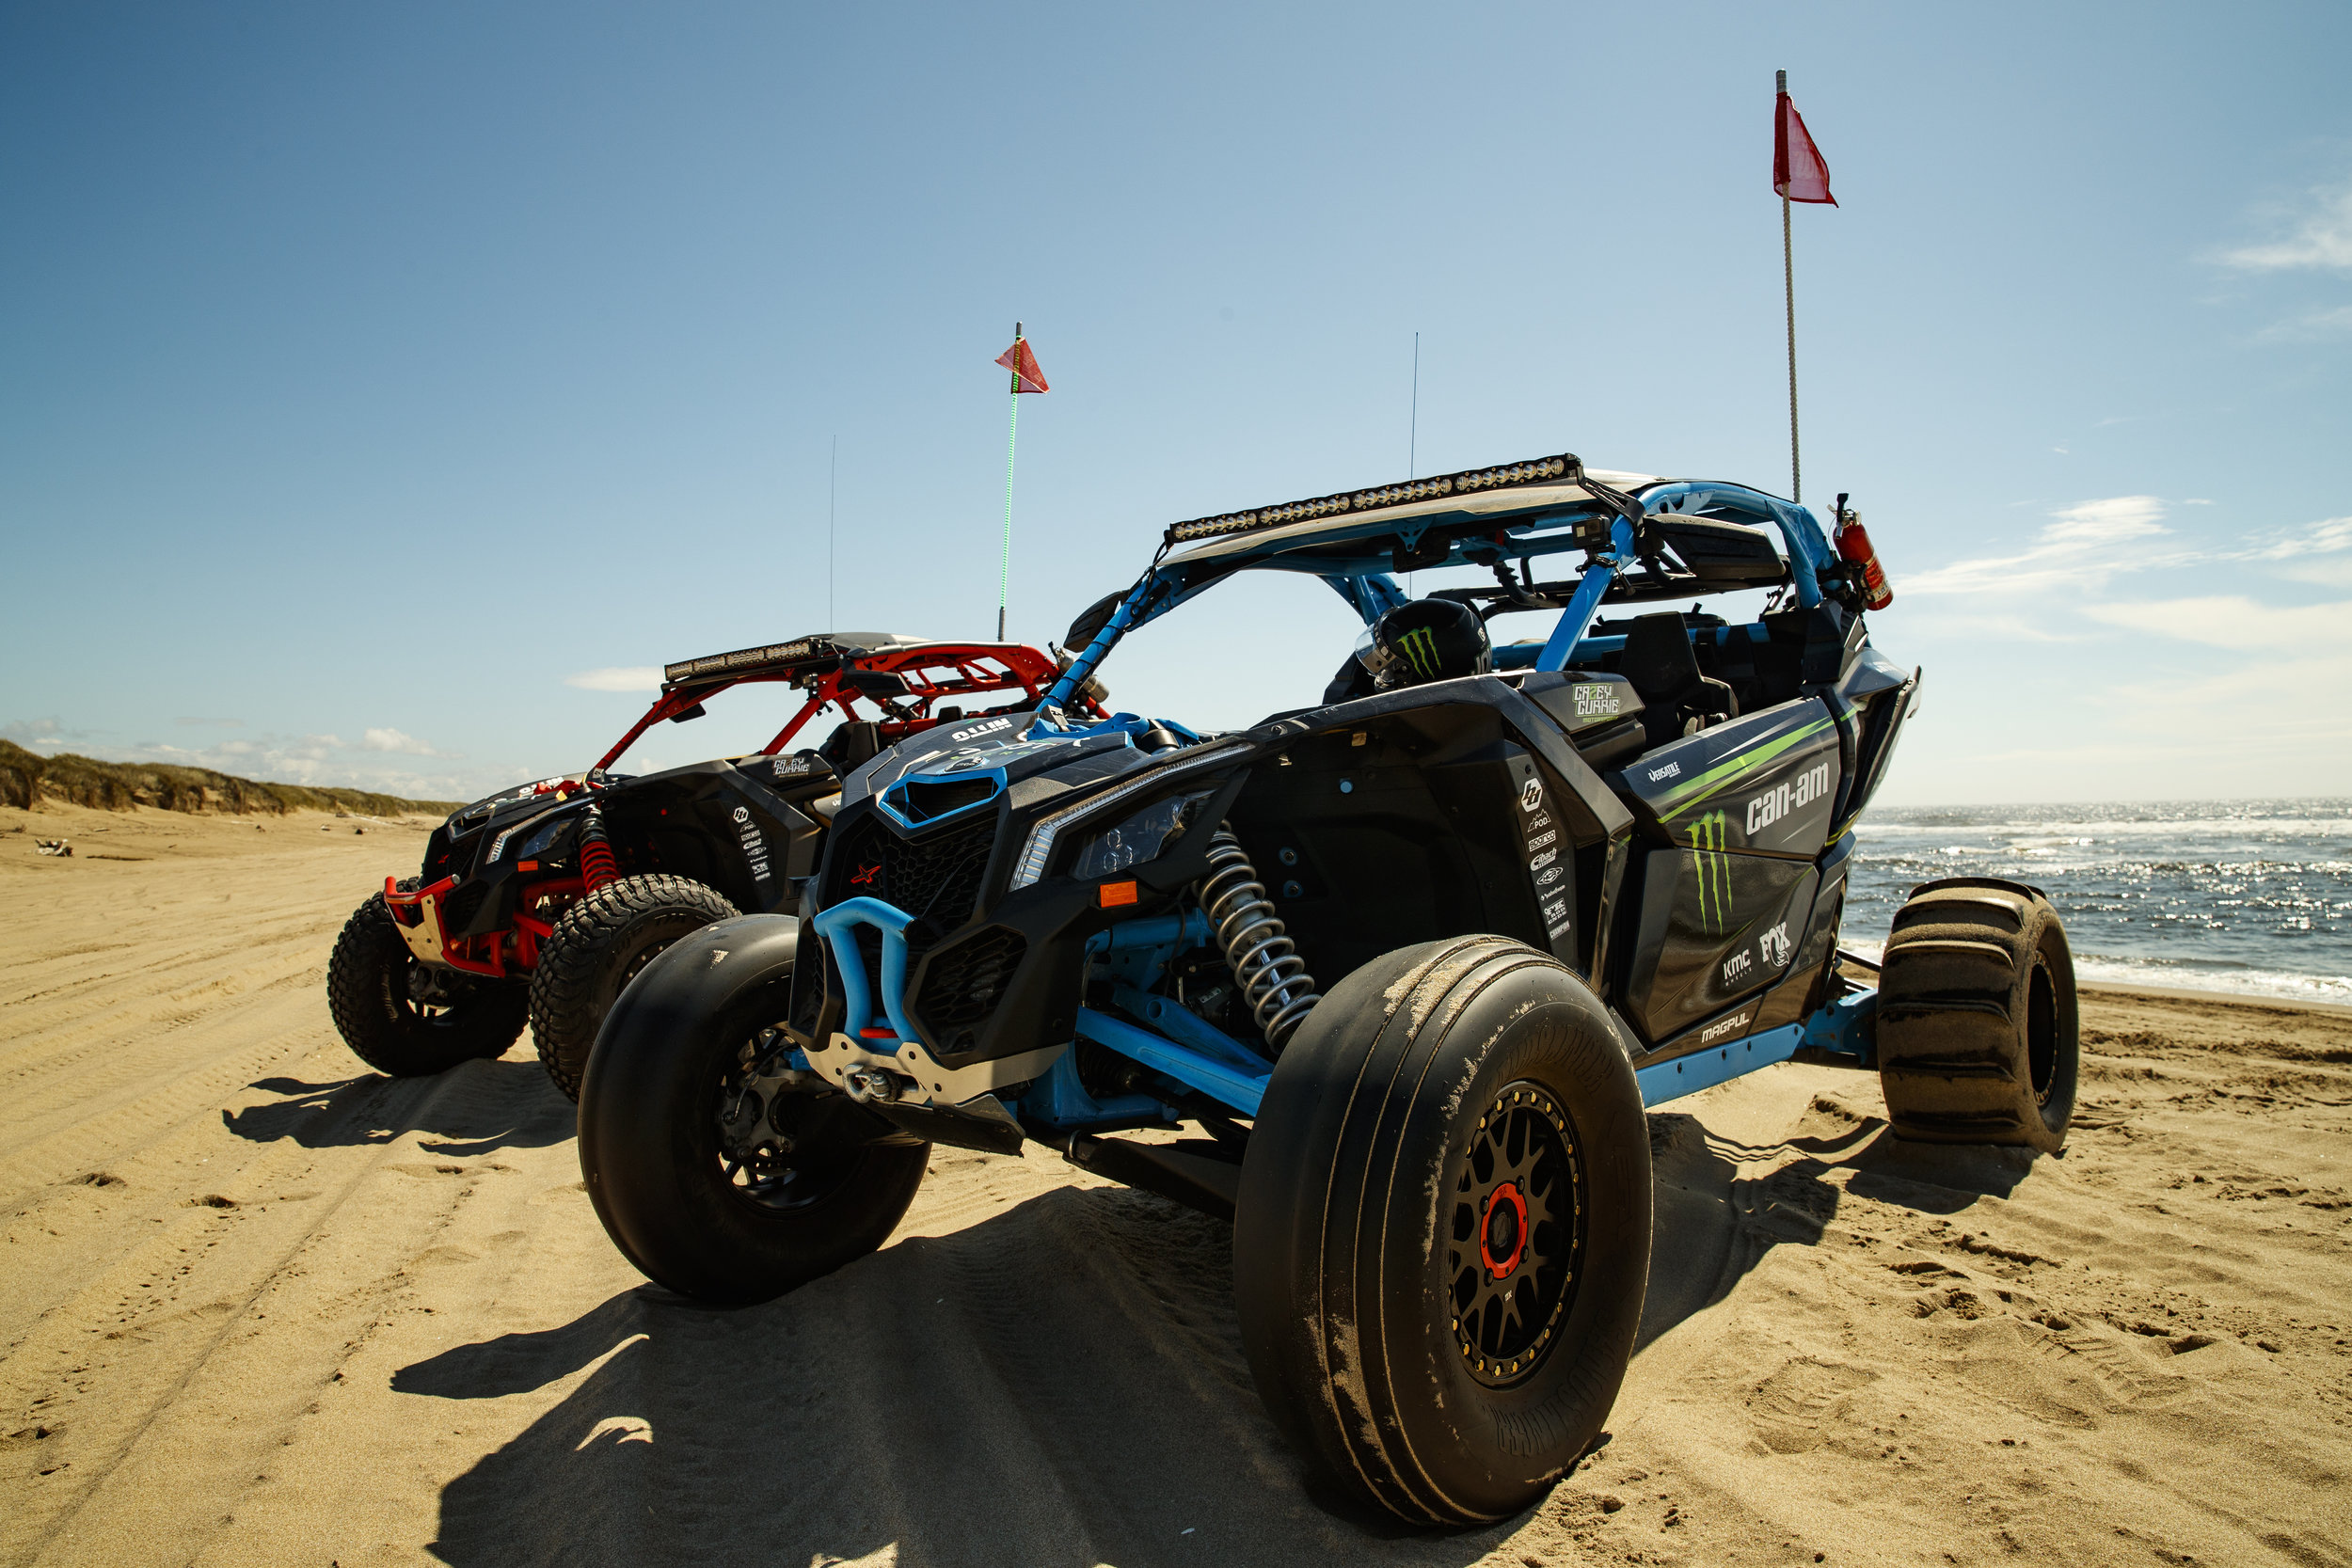 CaseyCurrie_UTVTakeover_CoosBay_Oregon_Can-Am_002.jpg